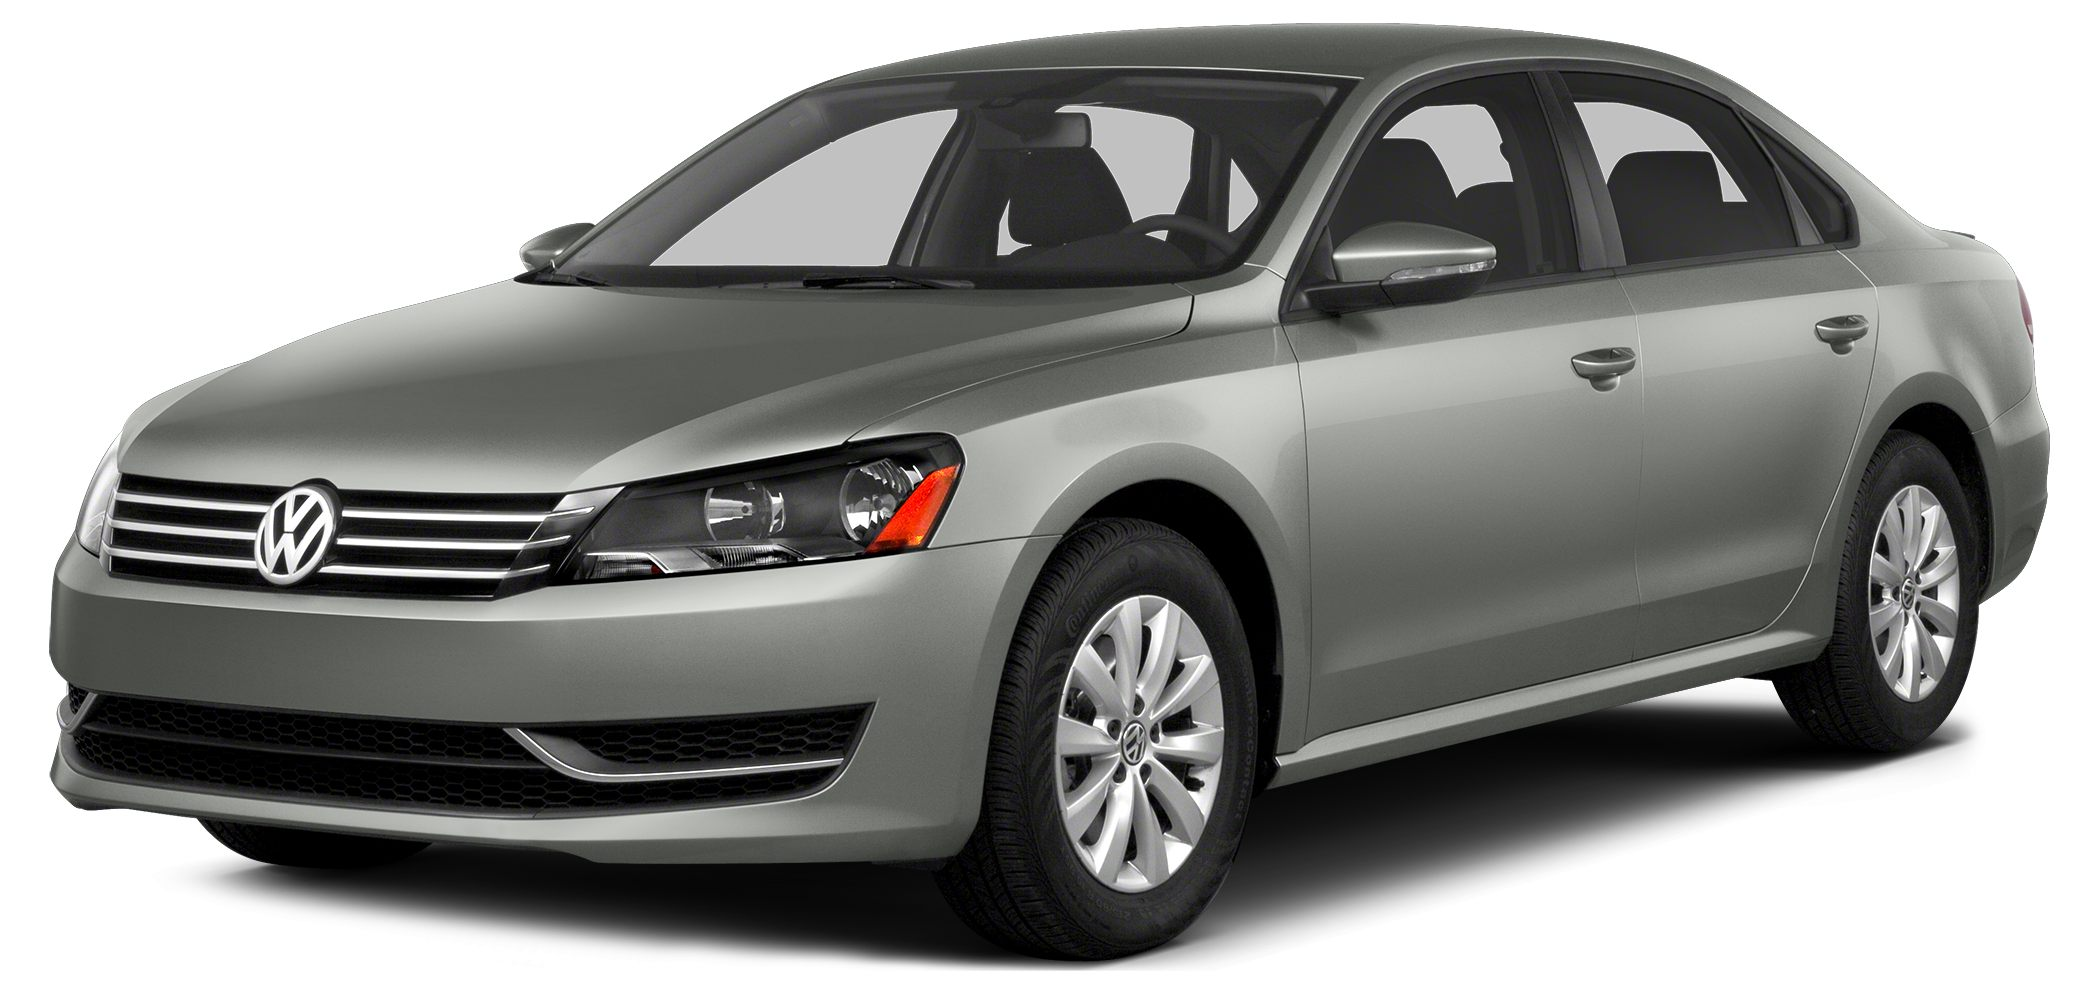 2015 Volkswagen Passat 18T S CALL KENNY HUNTER INTERNET MANAGER 352-360-7150Trustworthy and